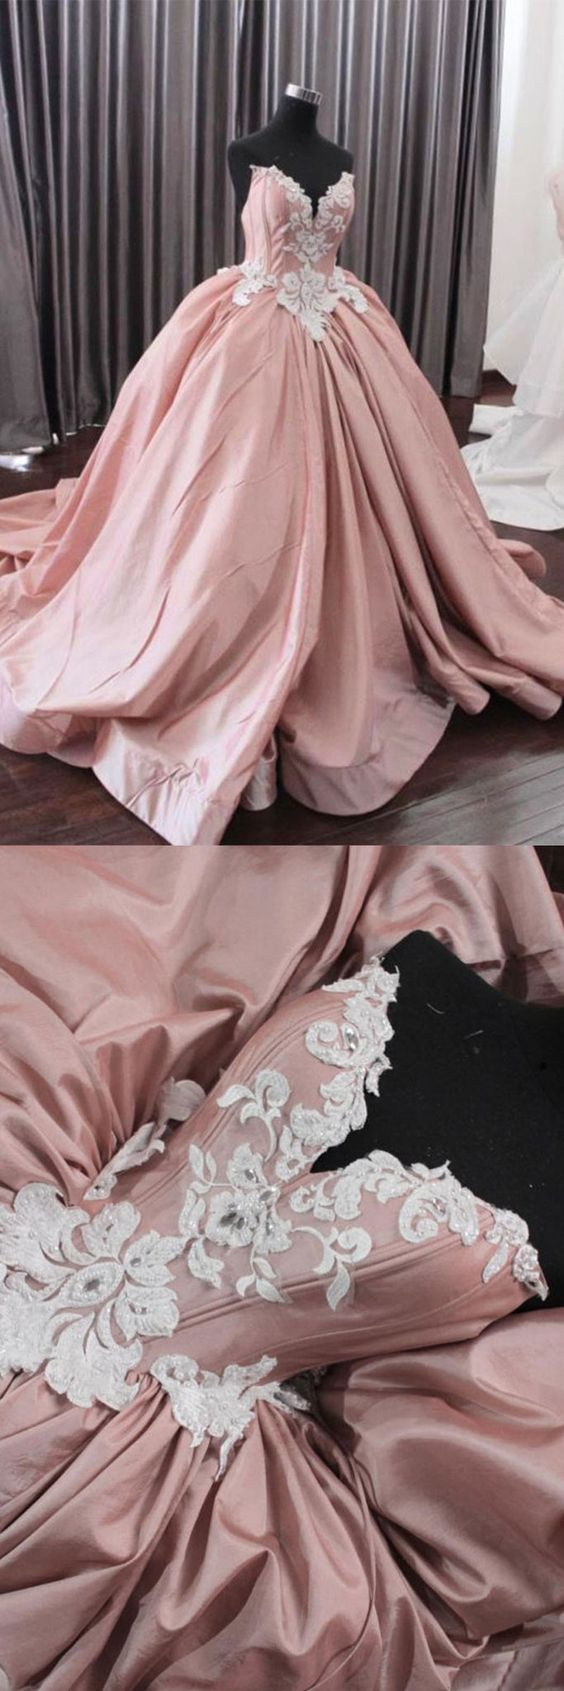 Fashion Ball Gown Sweetheart Pink Long Prom Dress With Appliques, D0281